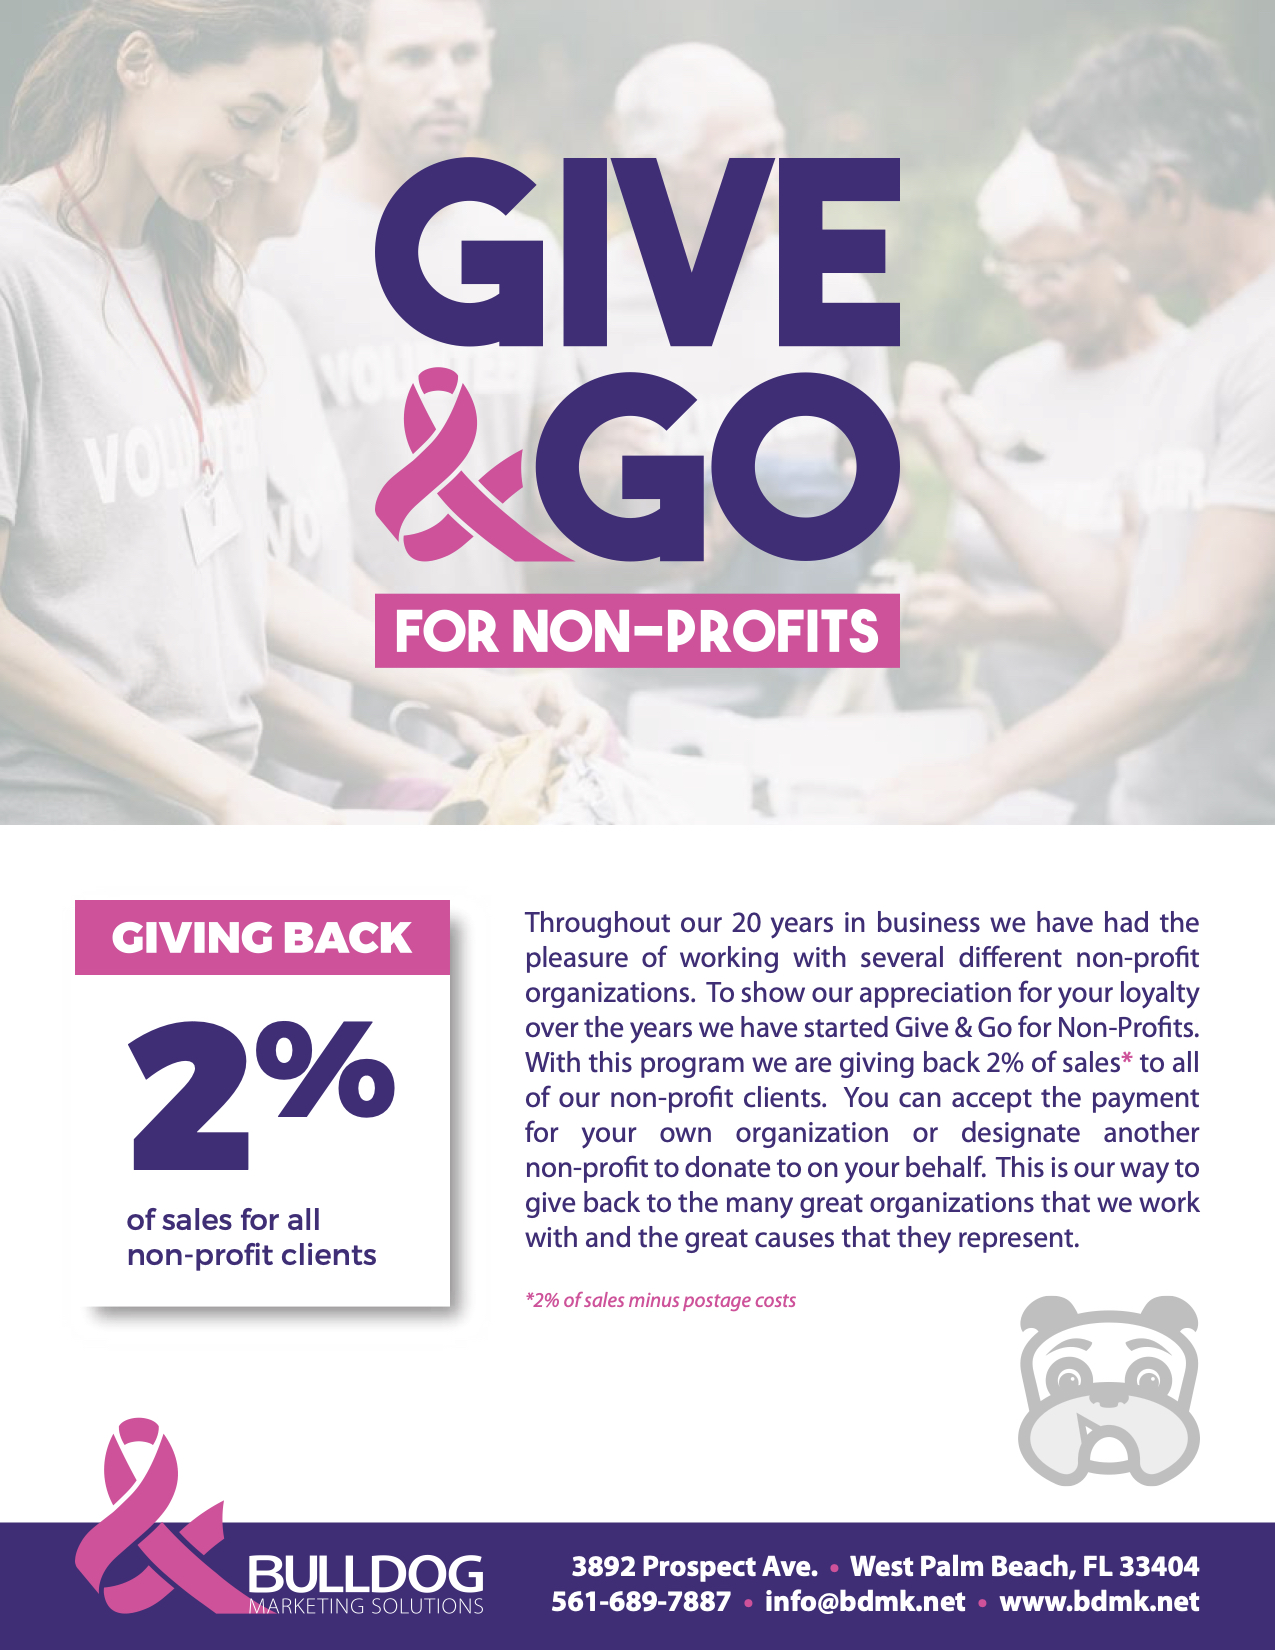 Give & Go for Non-Profits